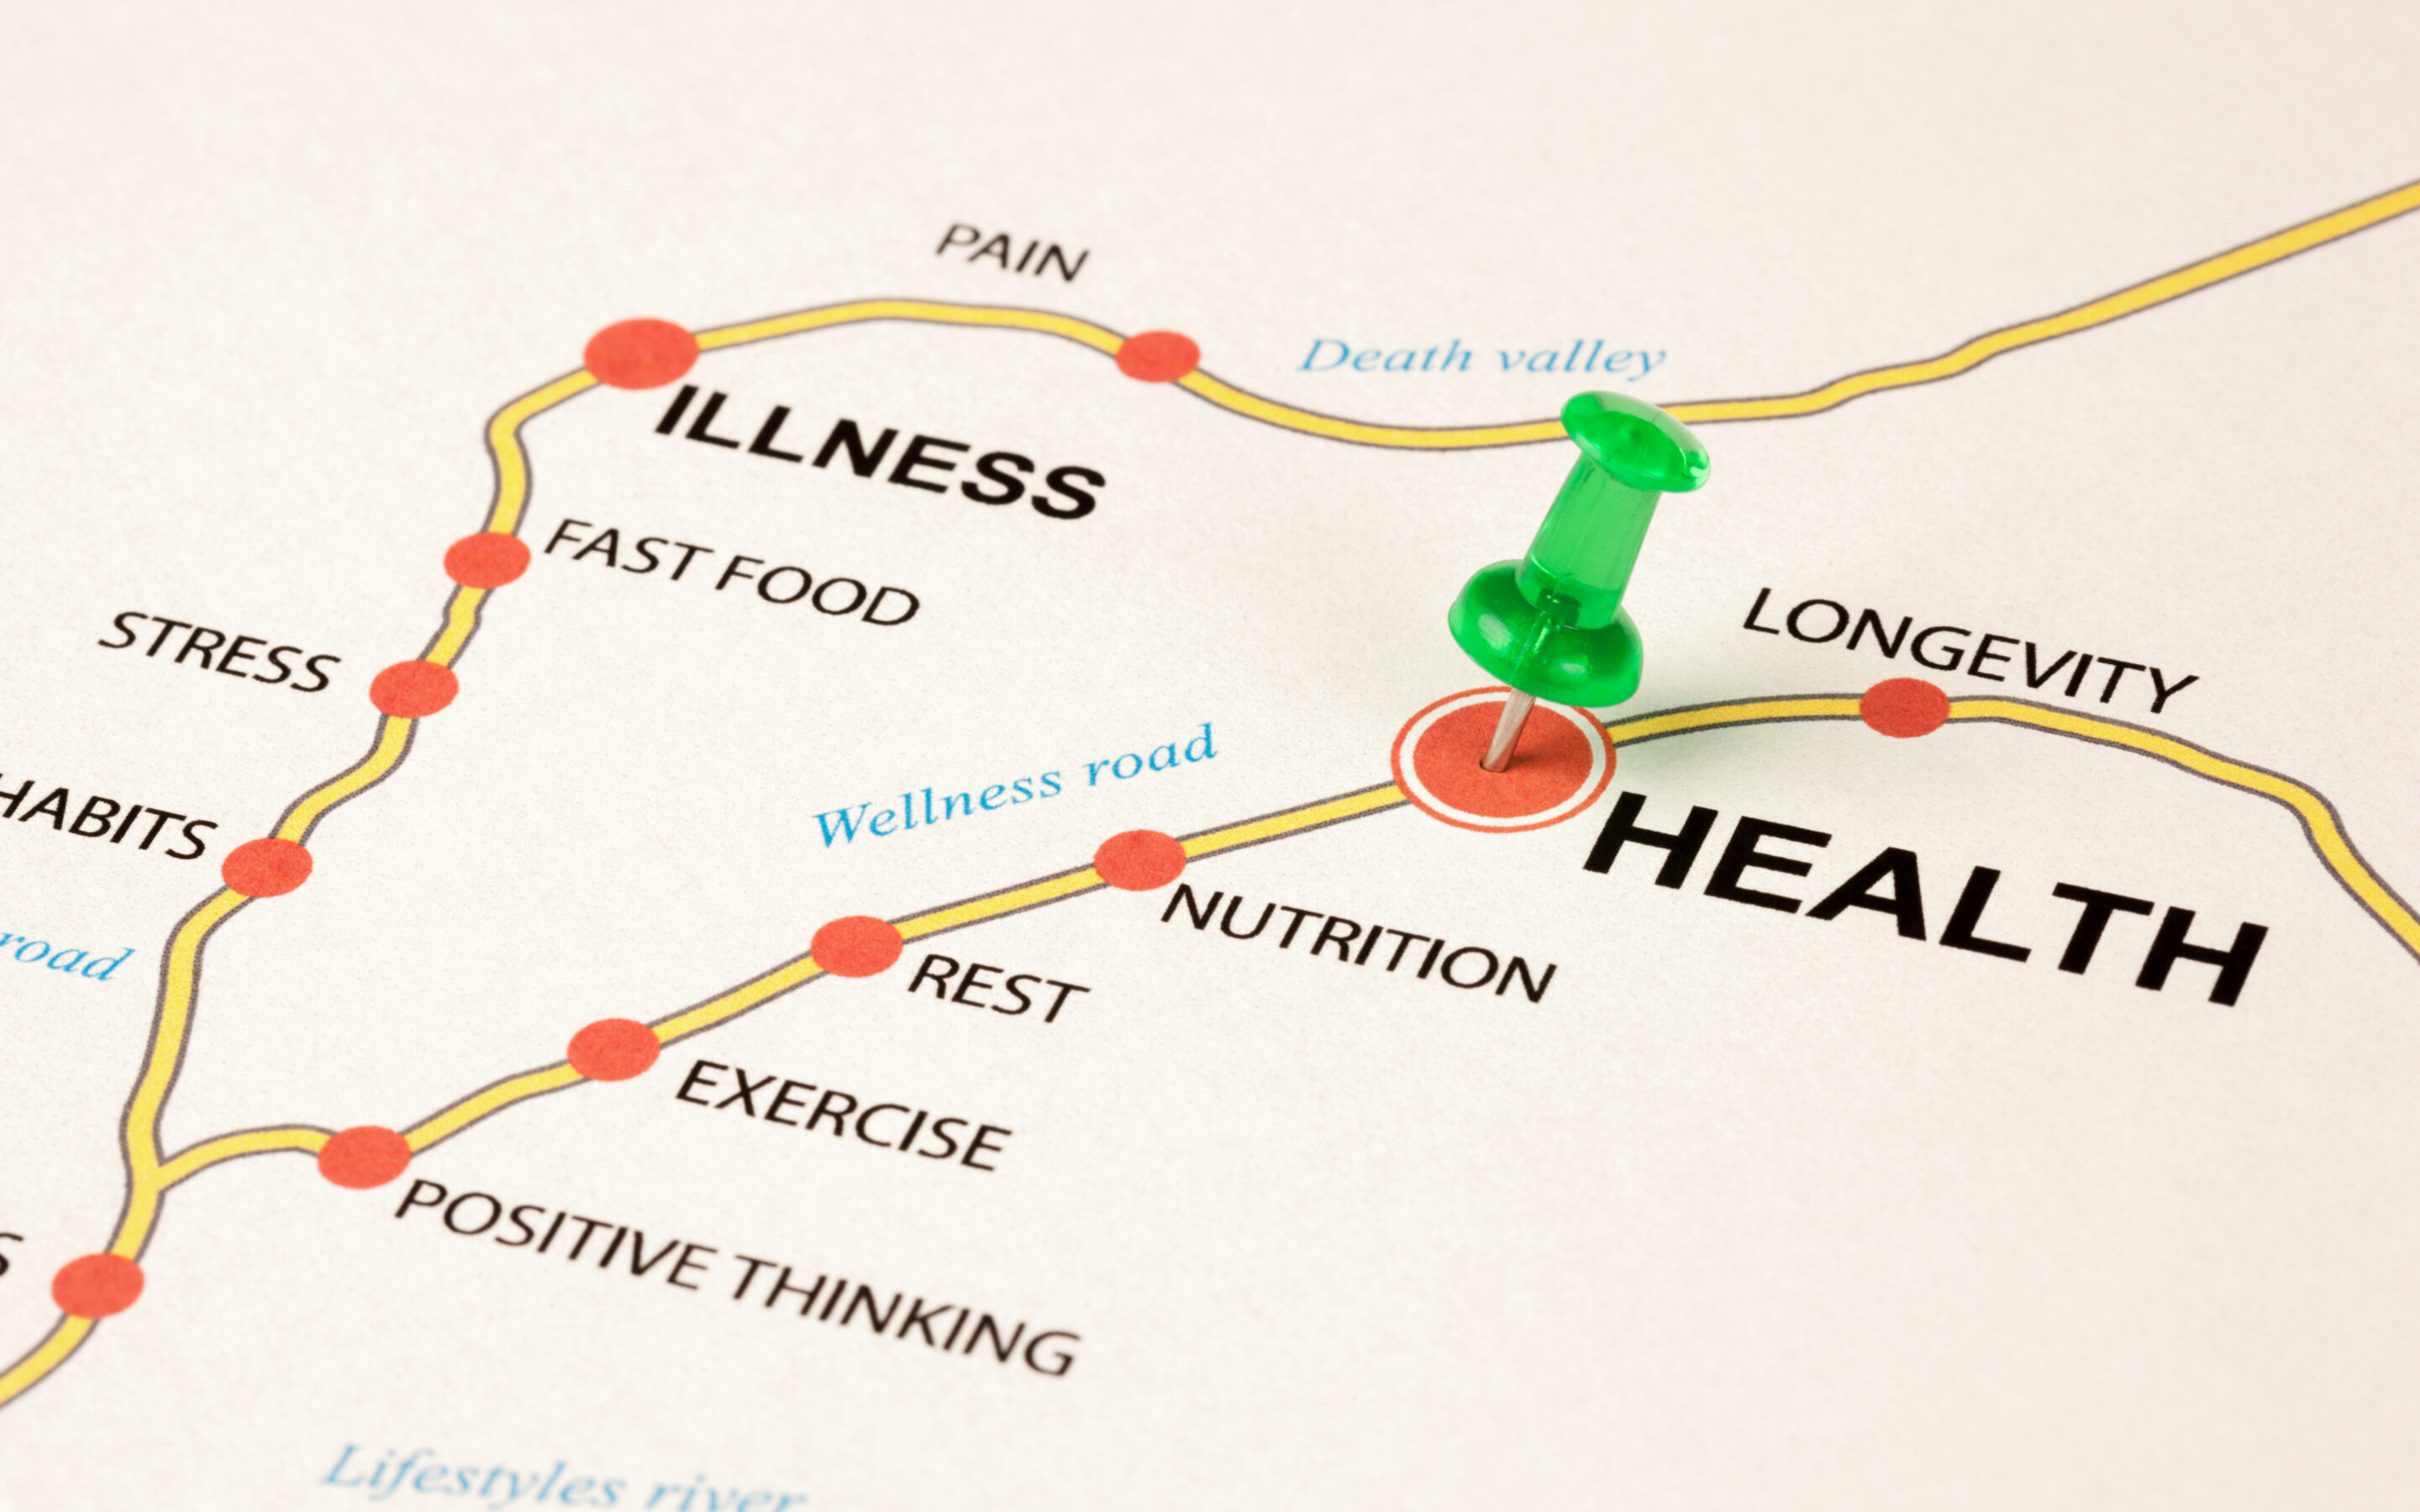 Map indicating ways to improve health